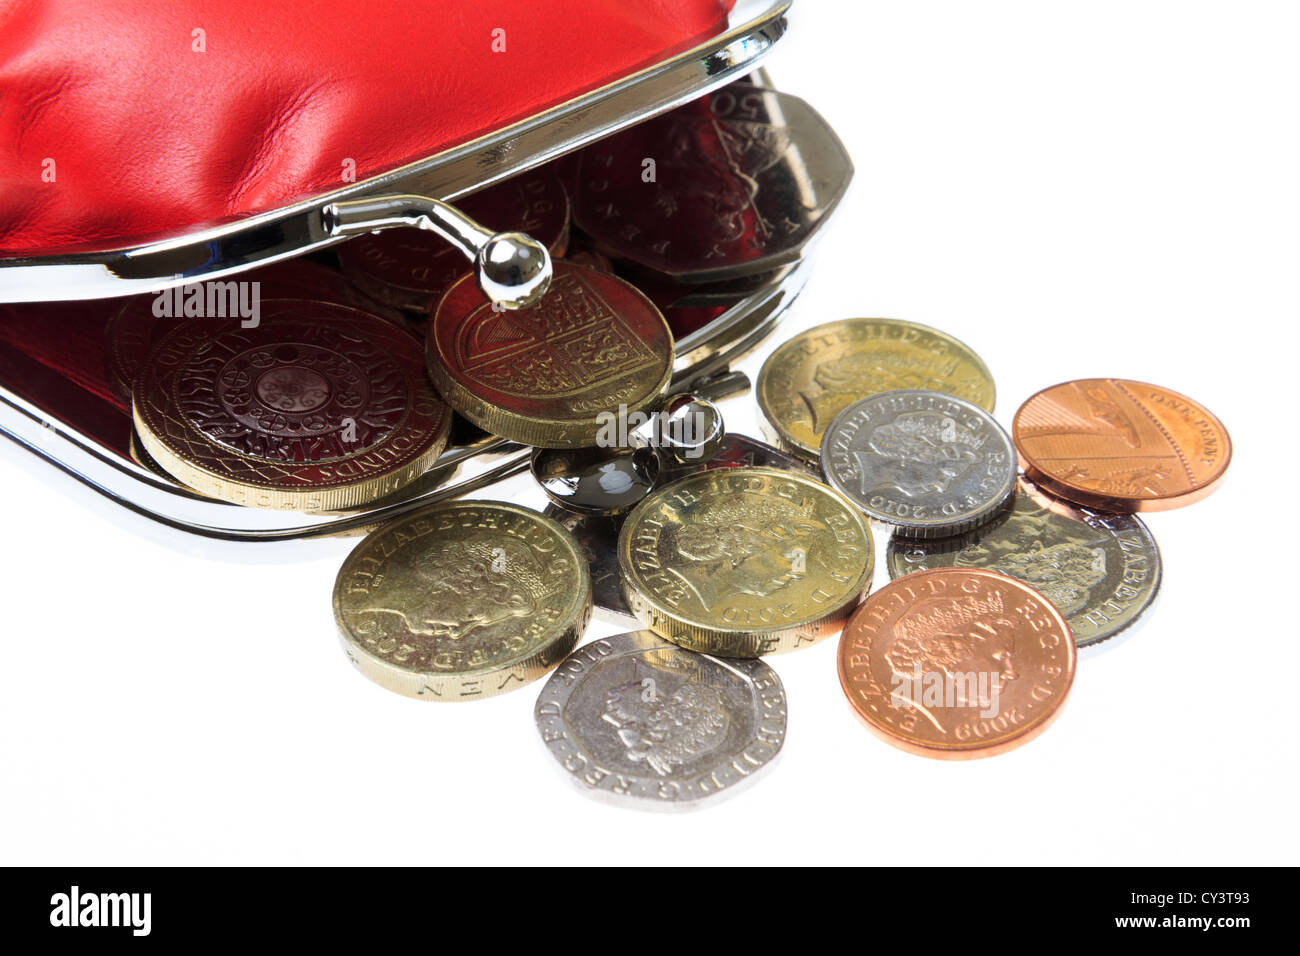 British red money purse open with some sterling coins currency spilling out on a white background from above. England - Stock Image